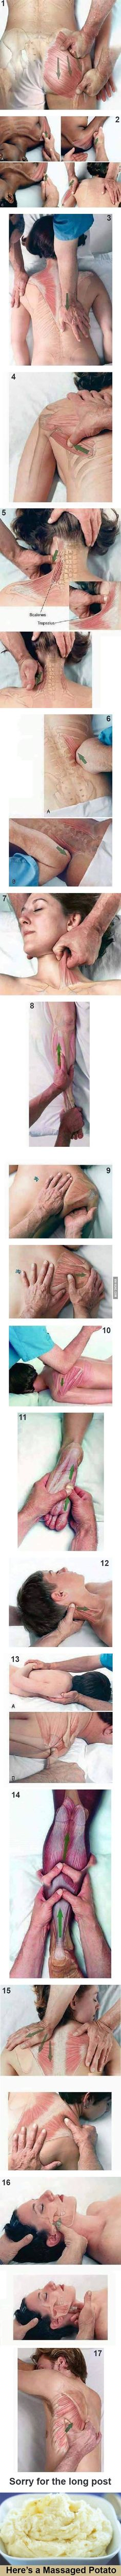 How to give a great massage - 9GAG                                                                                                                                                                                 More Massage Body, Hip Massage, Partner Massage, Sports Massage, Massage Tips, Reflexology Massage, Sciatica Massage, Reflexology Points, Massage Images